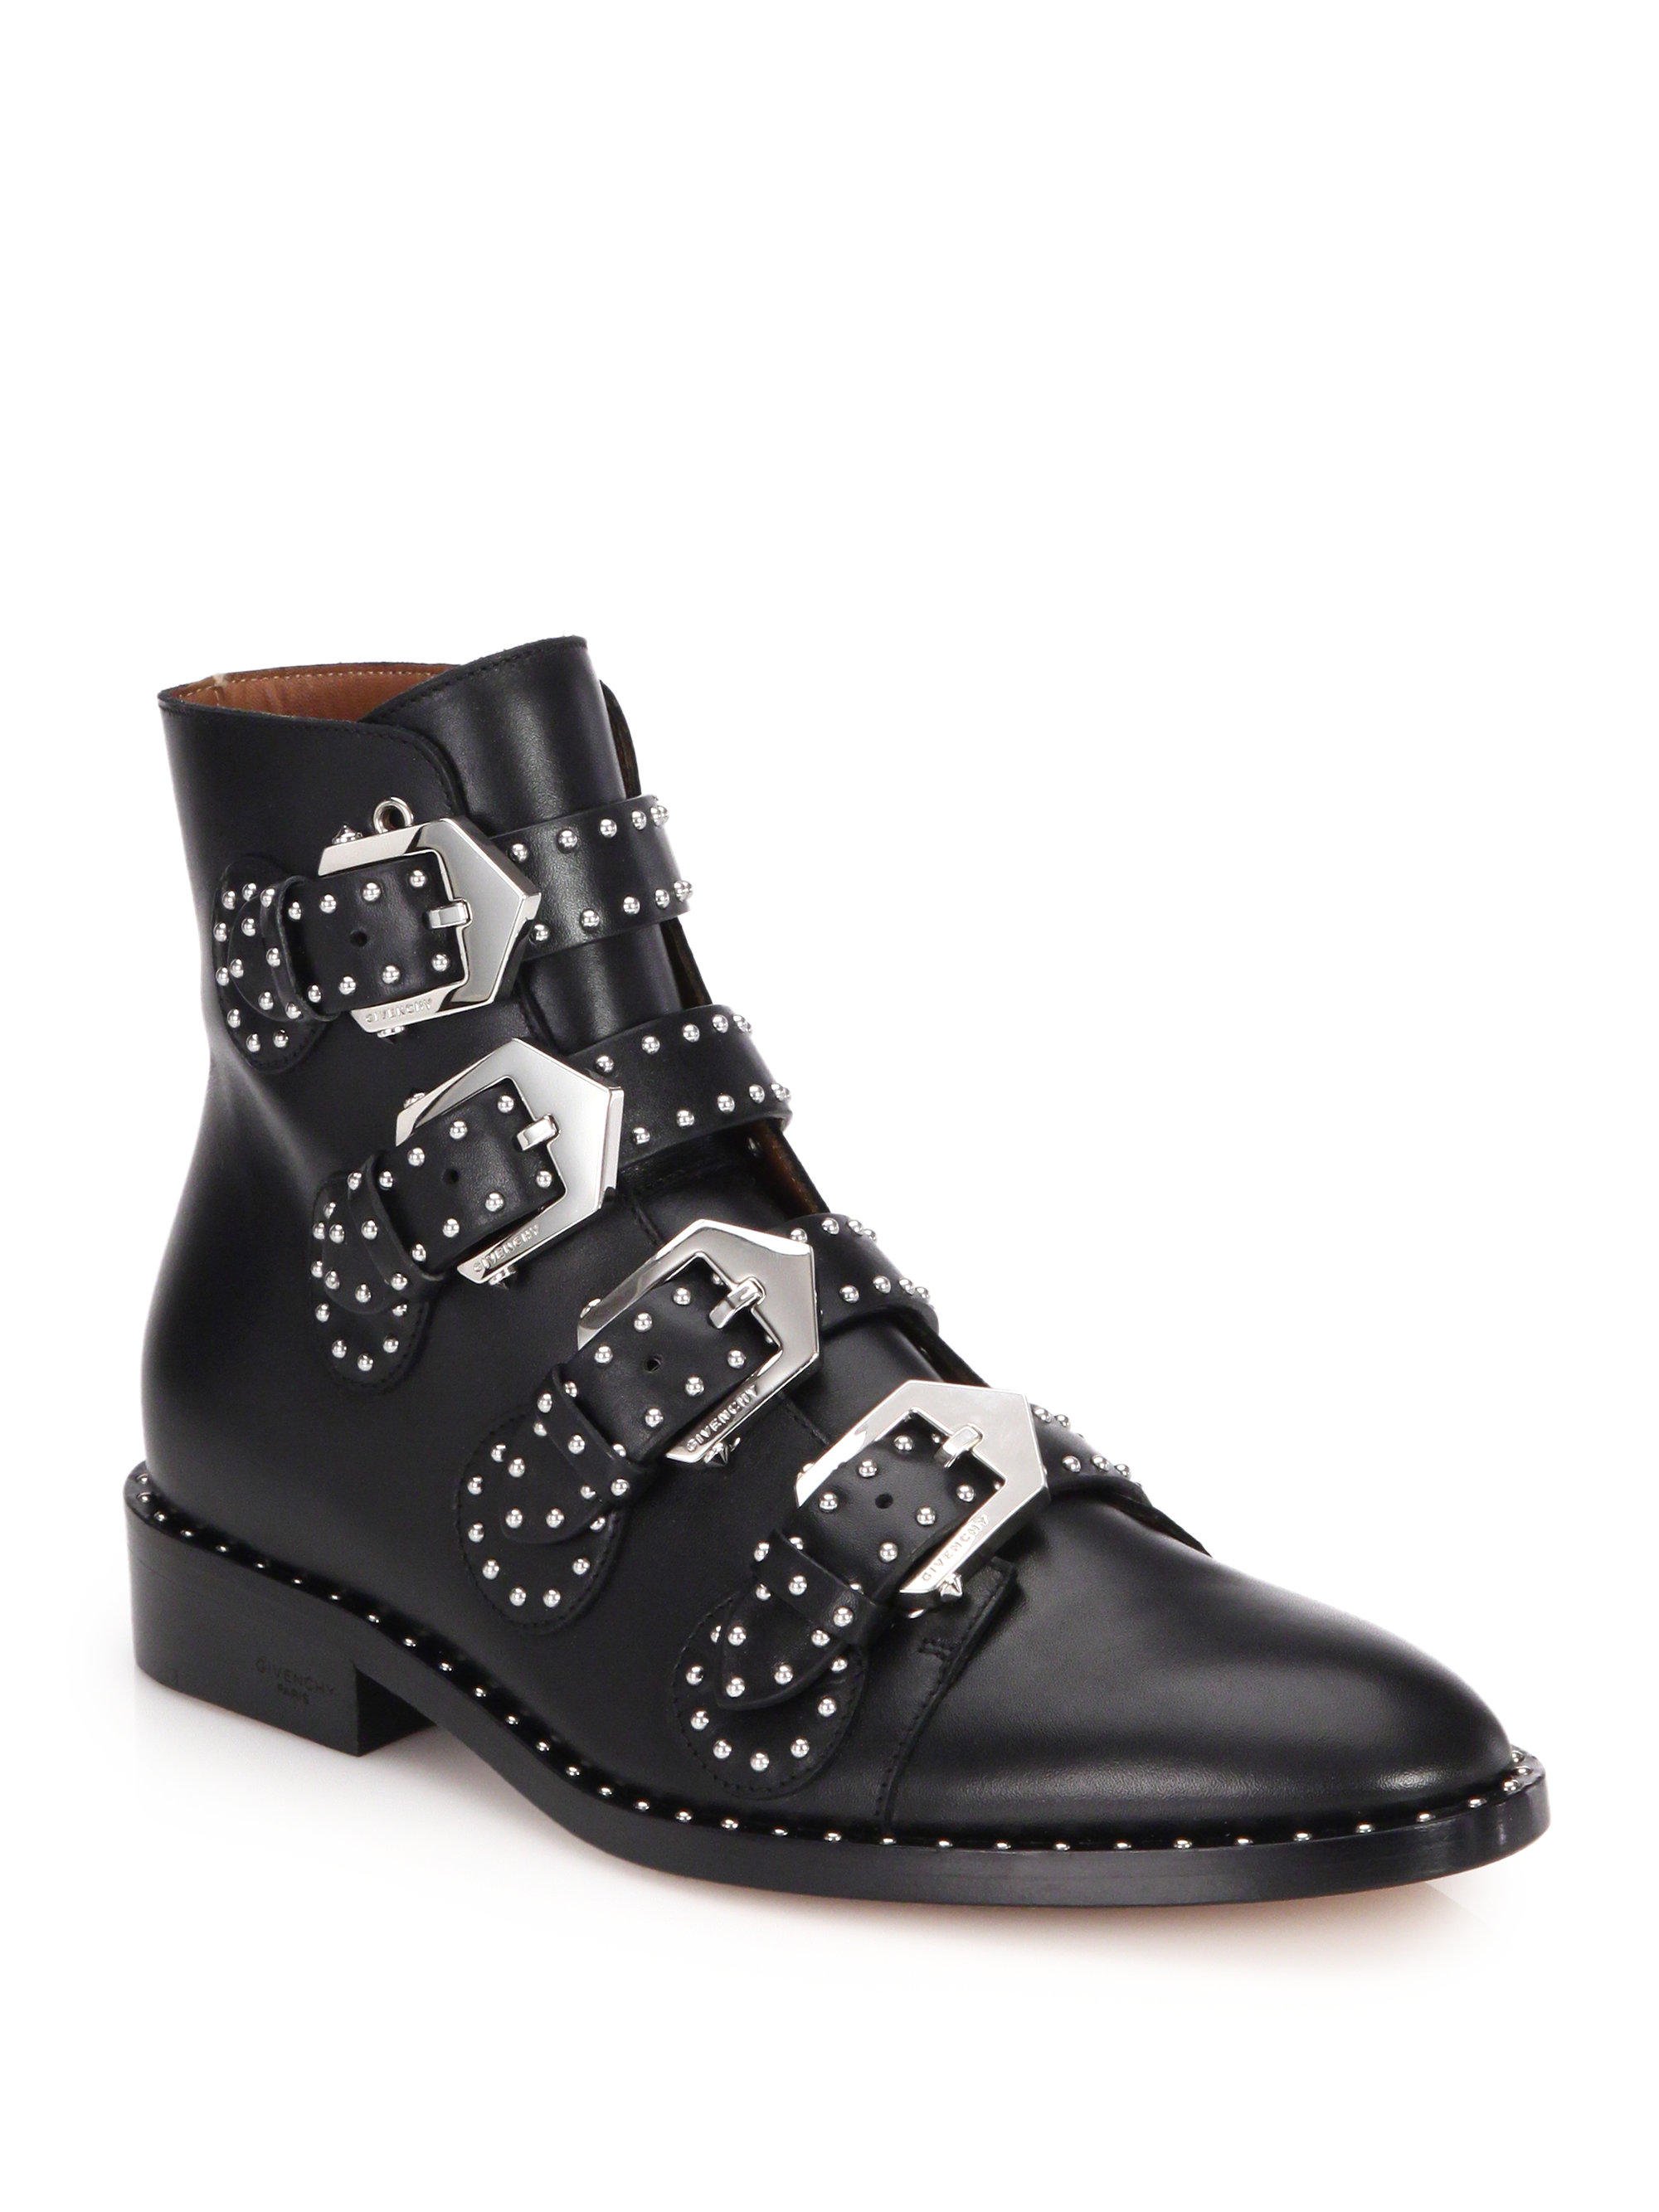 Givenchy Shoes Womens Sizing